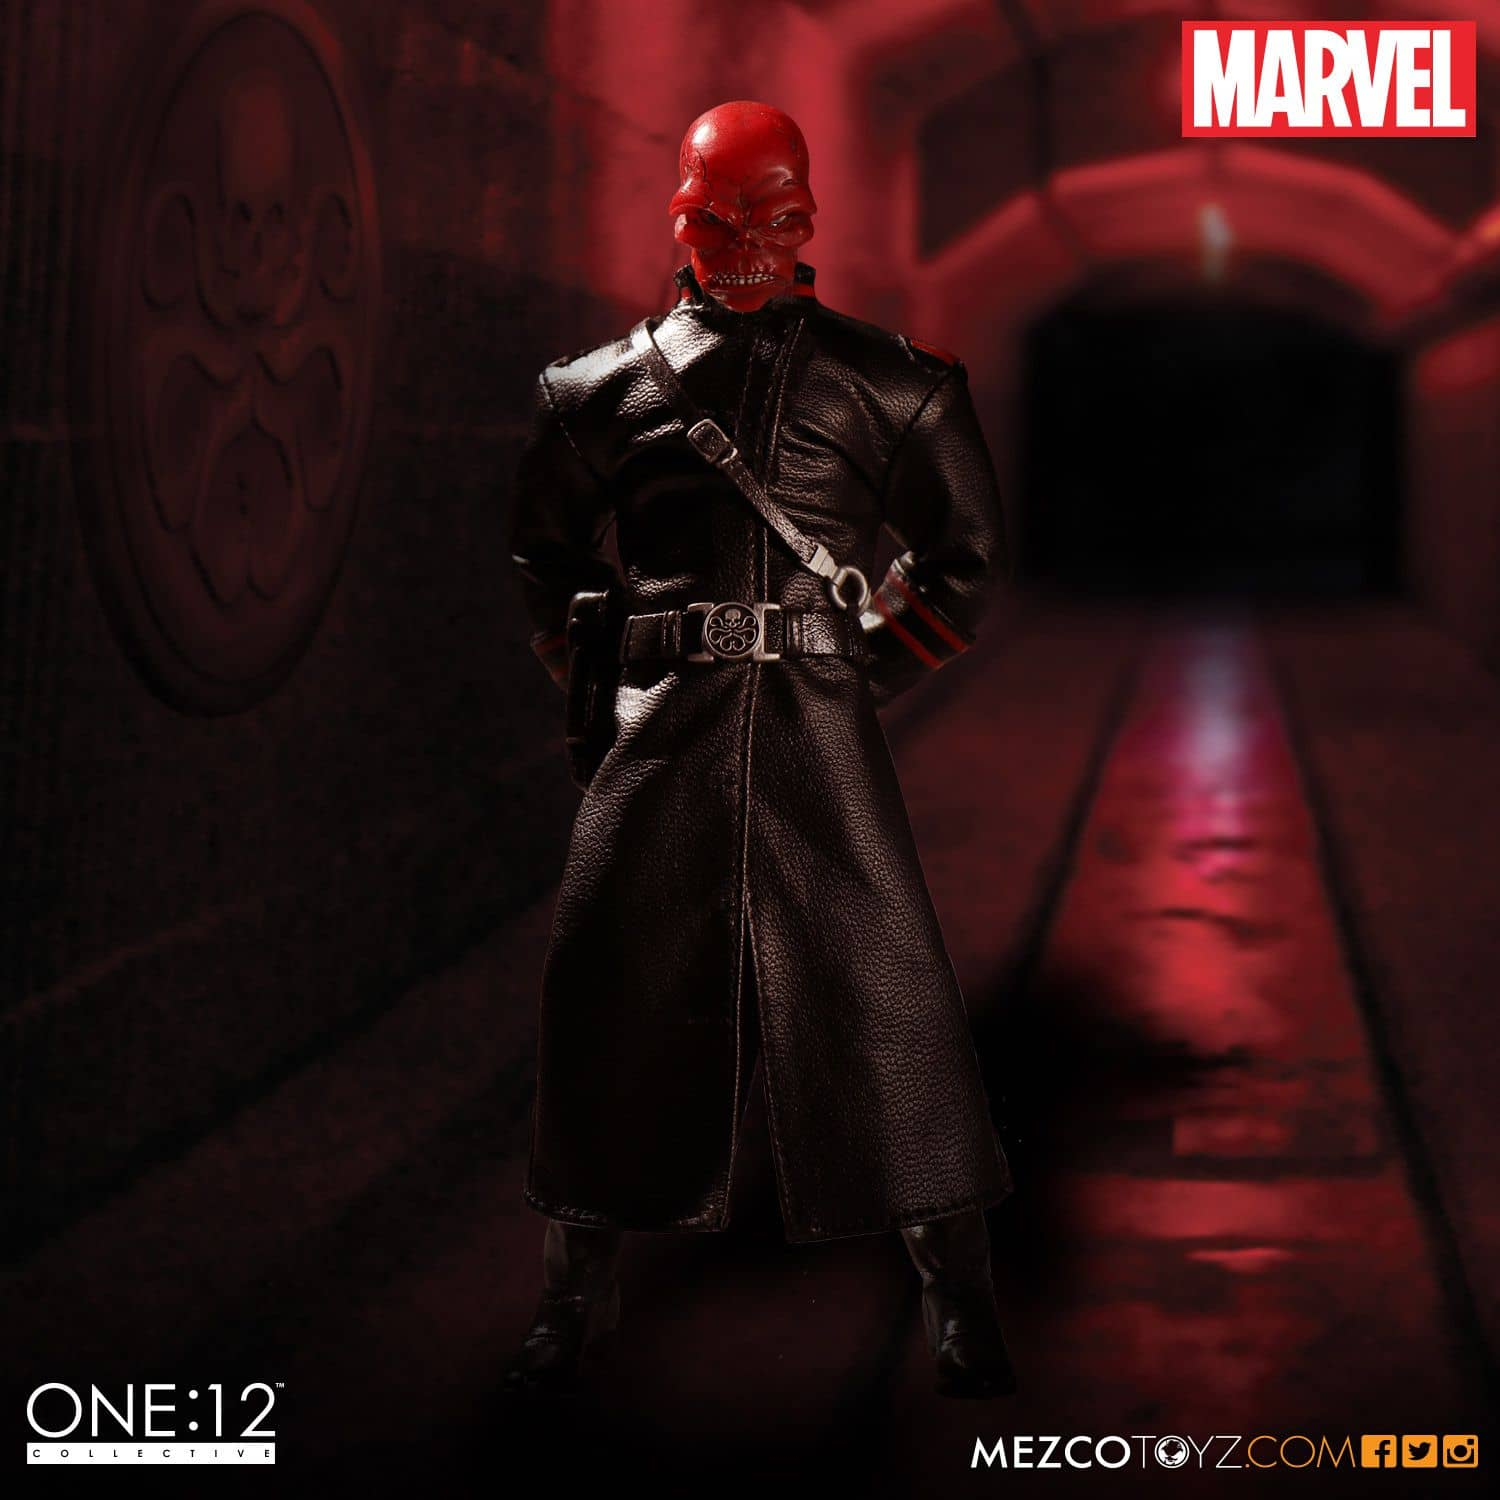 RED SKULL FIGURA 16,5 CM MARVEL ONE:12 COLLECTIVE